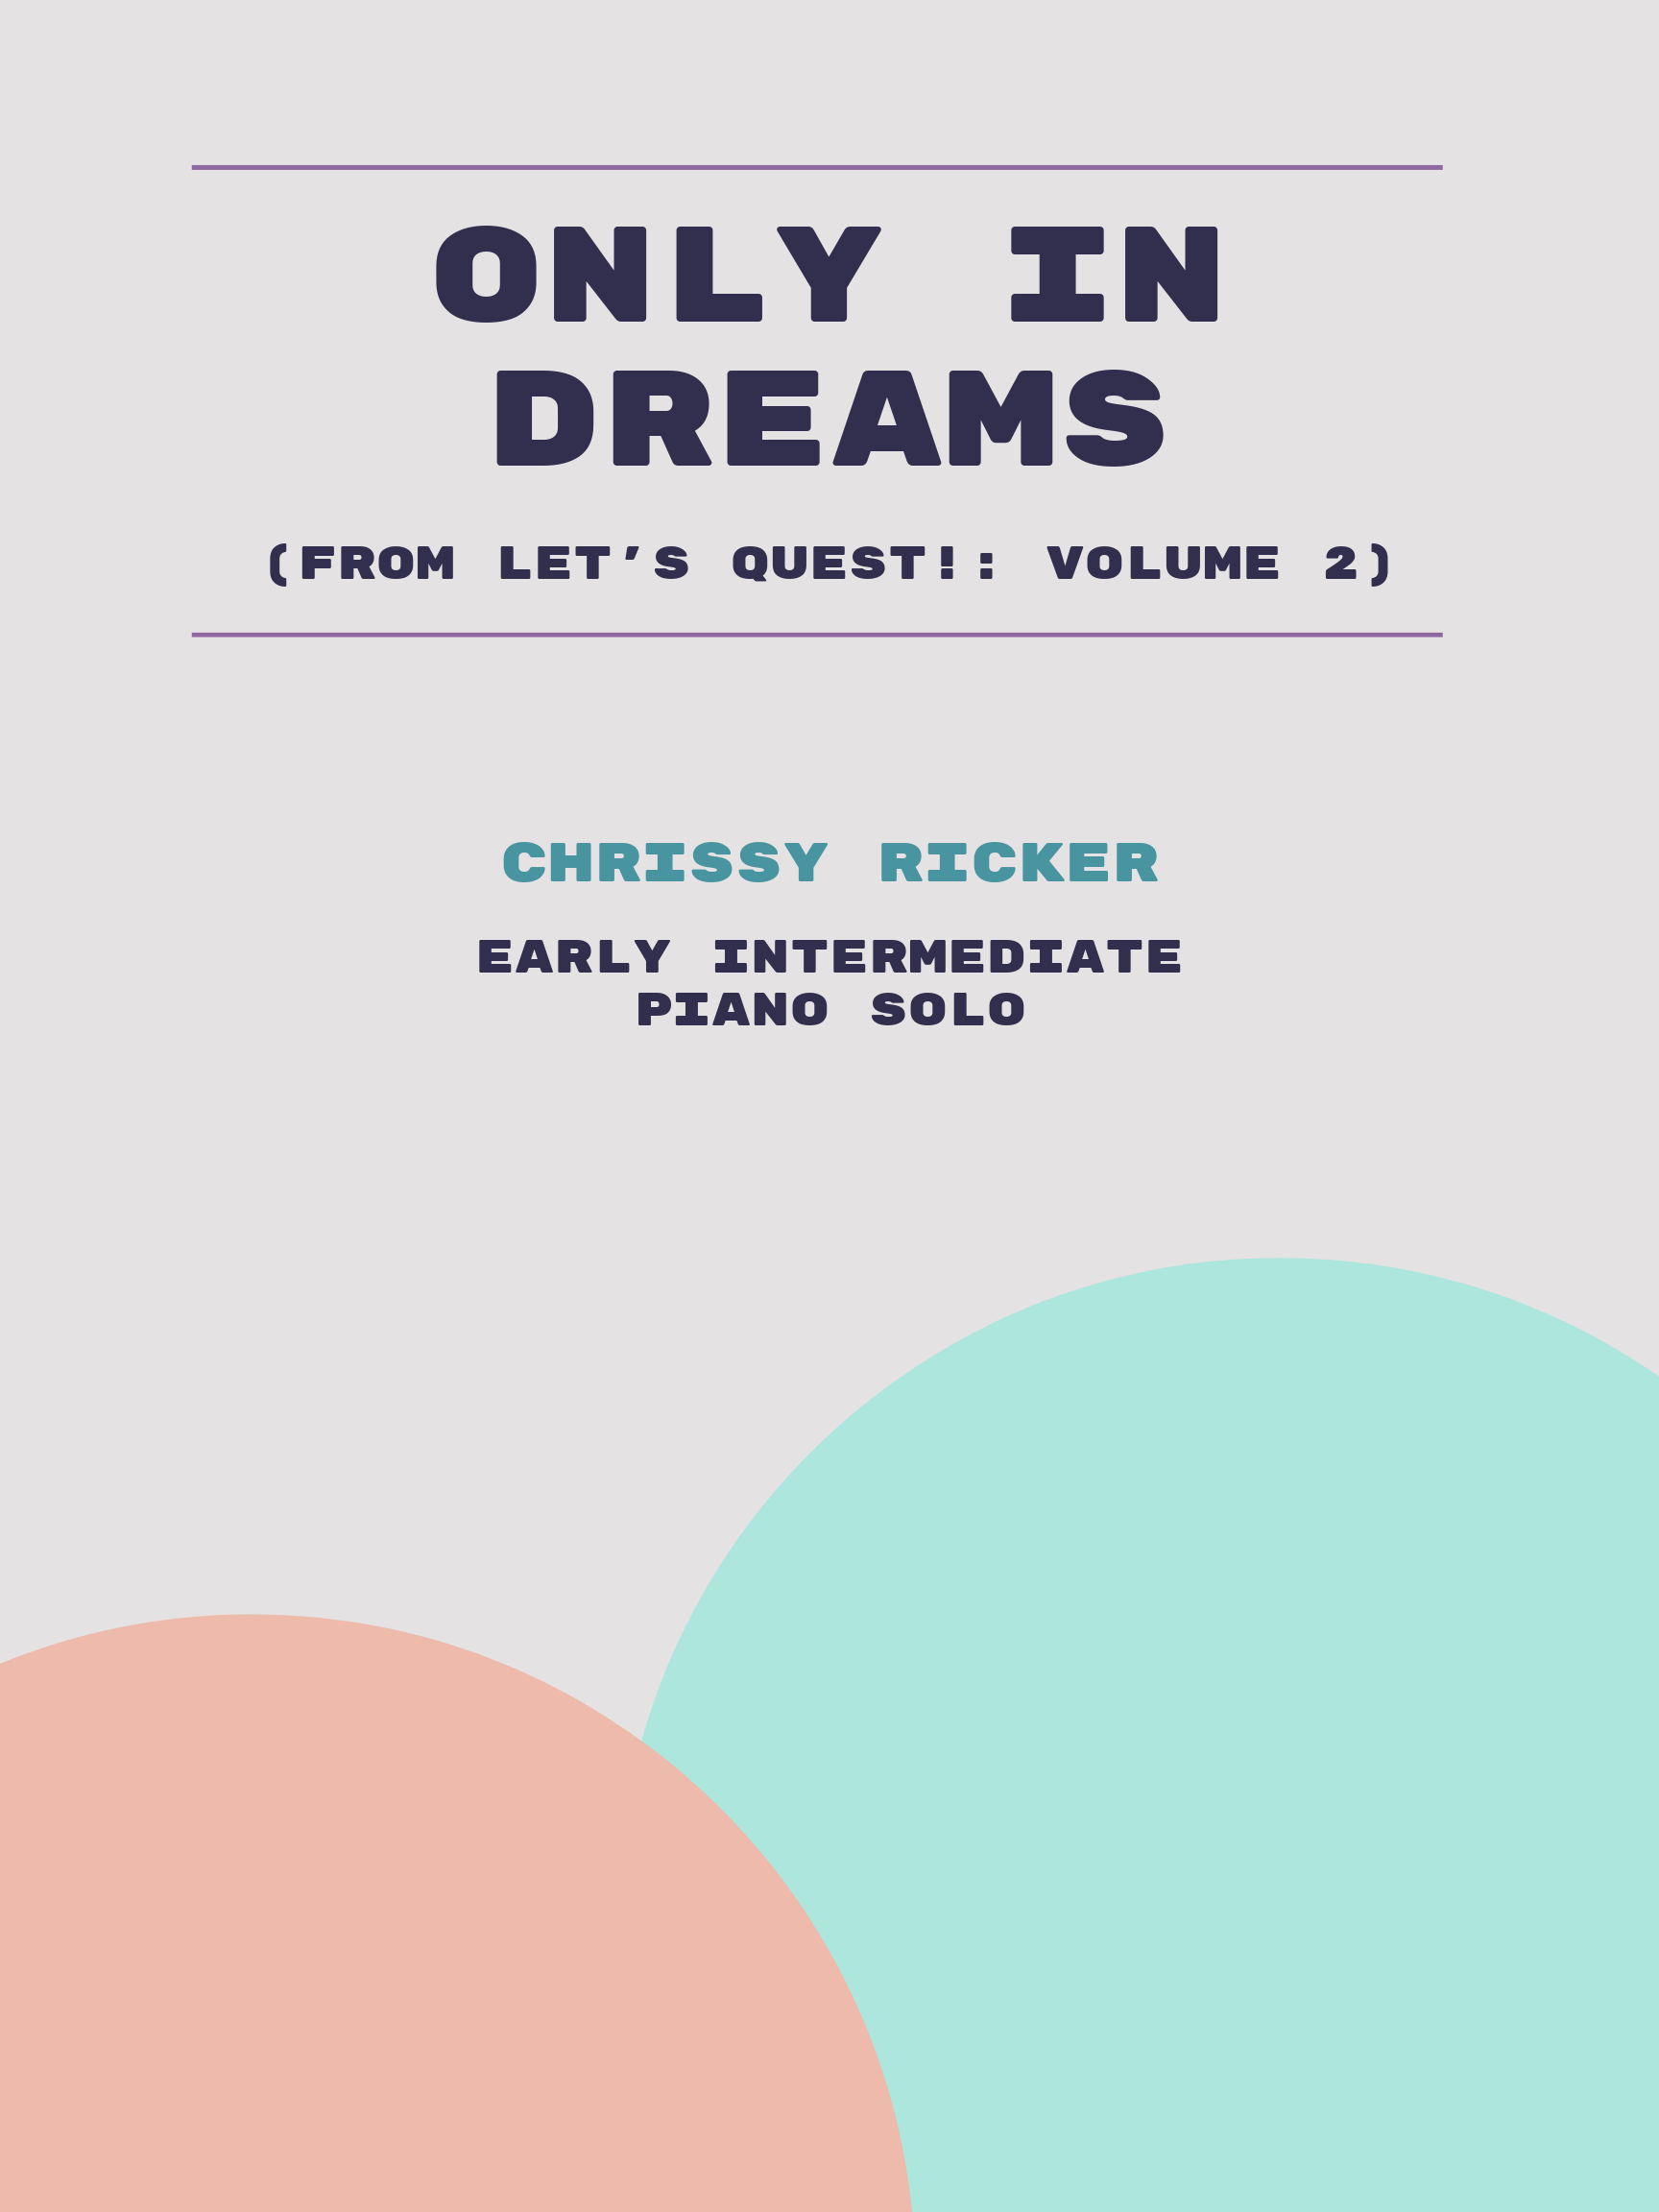 Only in Dreams by Chrissy Ricker